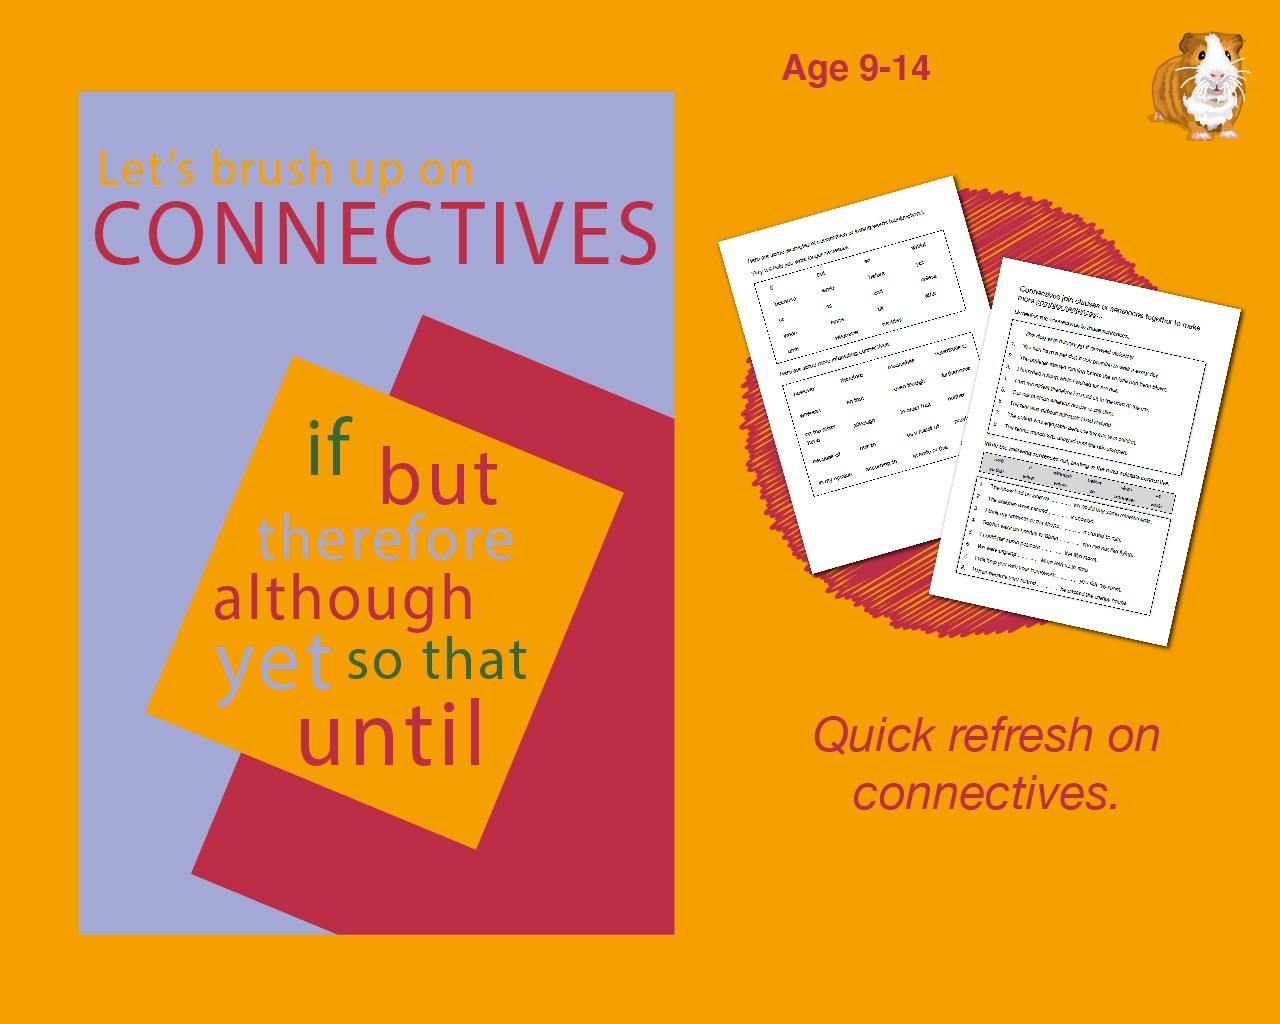 When Do I Use Connectives? (9-14 years)